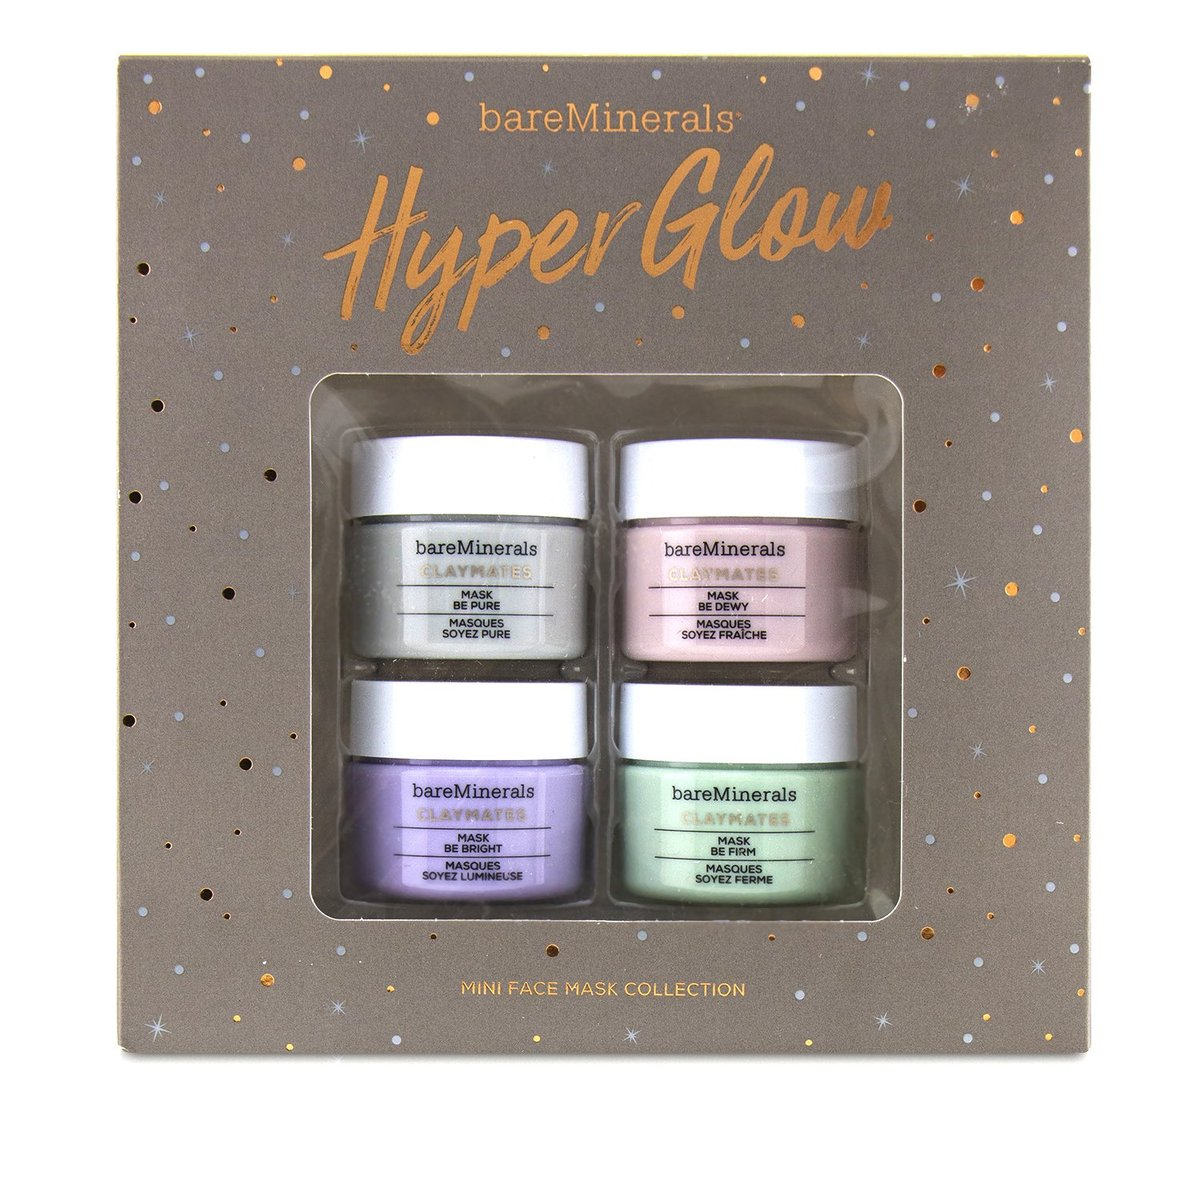 Hyper Glow Mini Face Mask Collection: Claymates Mask (1x Be Pure 15g, 1x Be Dewy 15g, 1x Be Bright 1